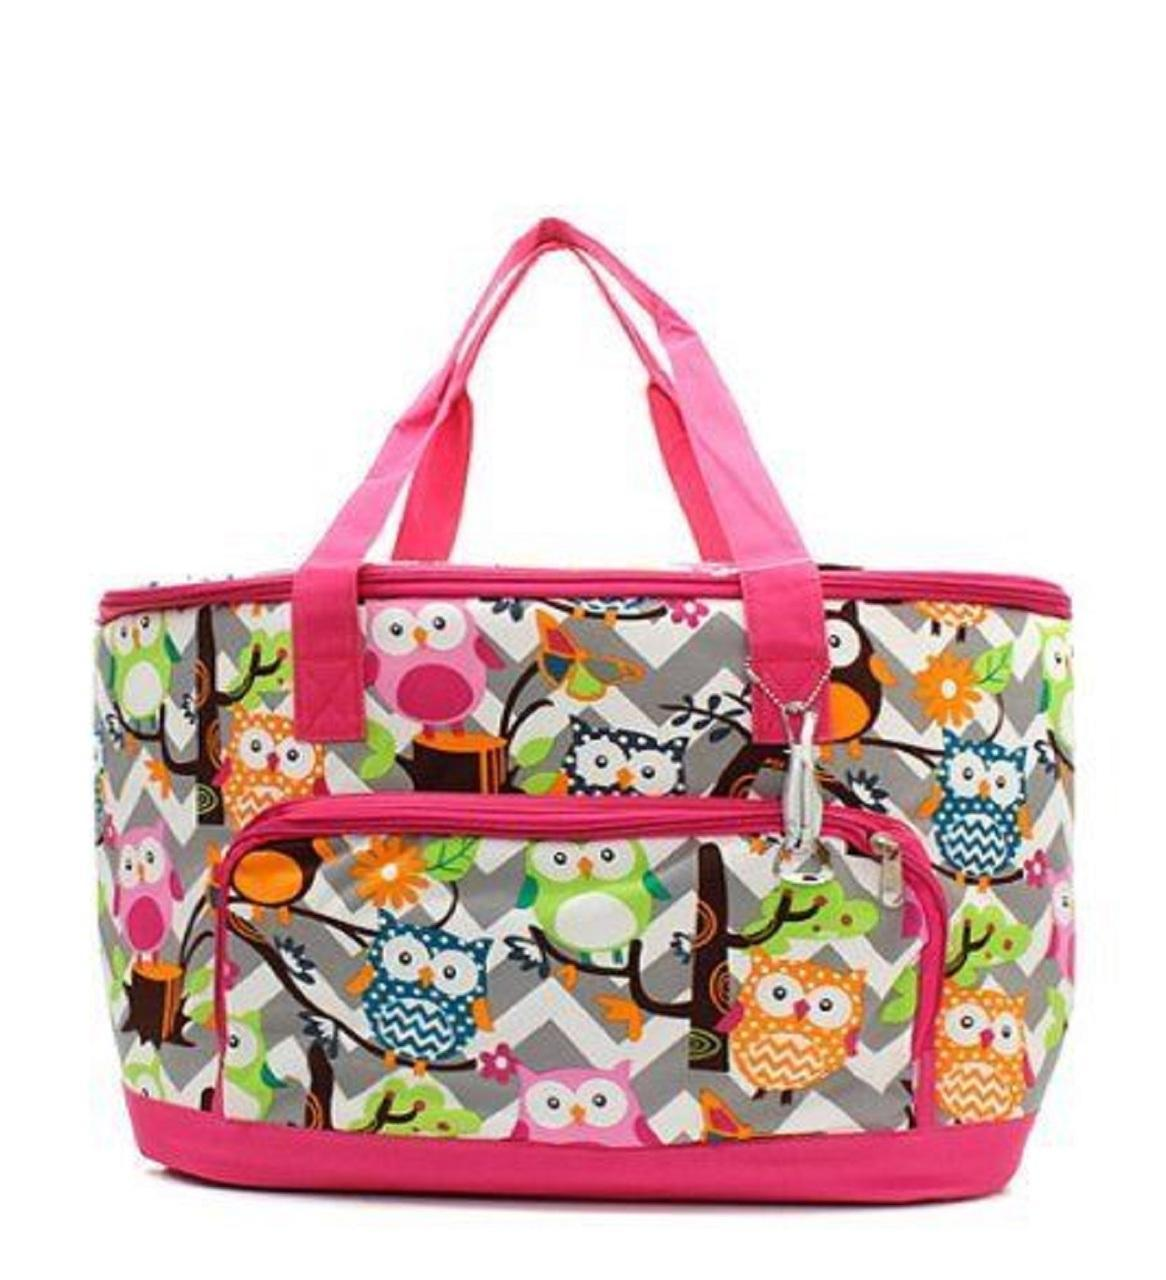 Owl Grey Chevron Stripe Large Insulated Cooler Tote Beach Bag (HOT PINK)